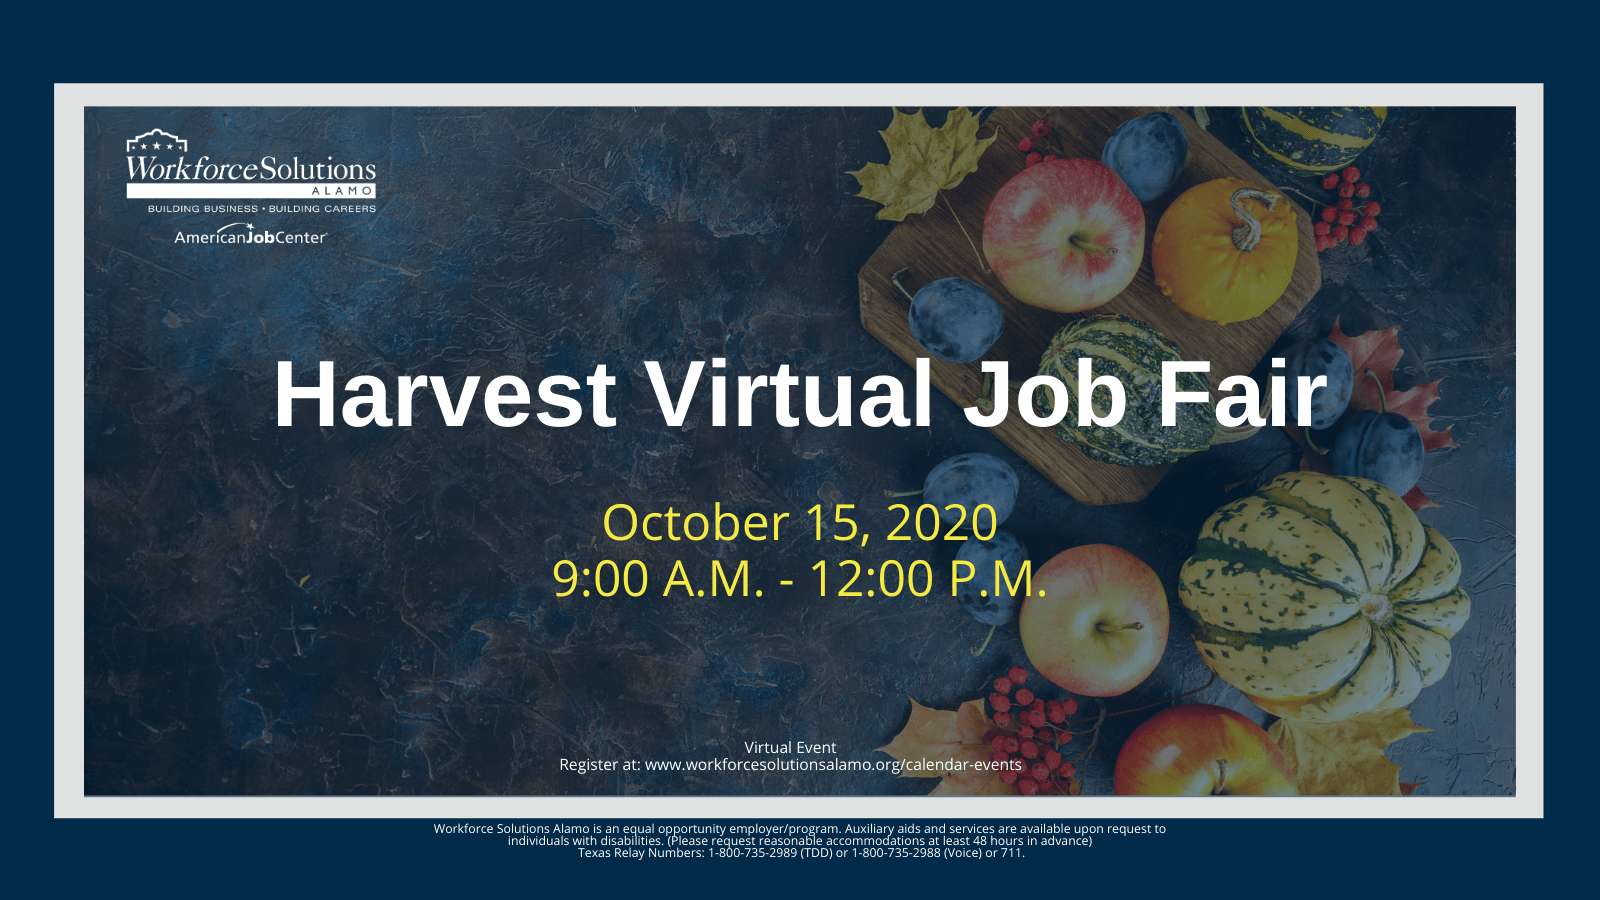 Flyer for Harvest Job Fair from 10 a.m. to 12 p.m. October 15, 2020